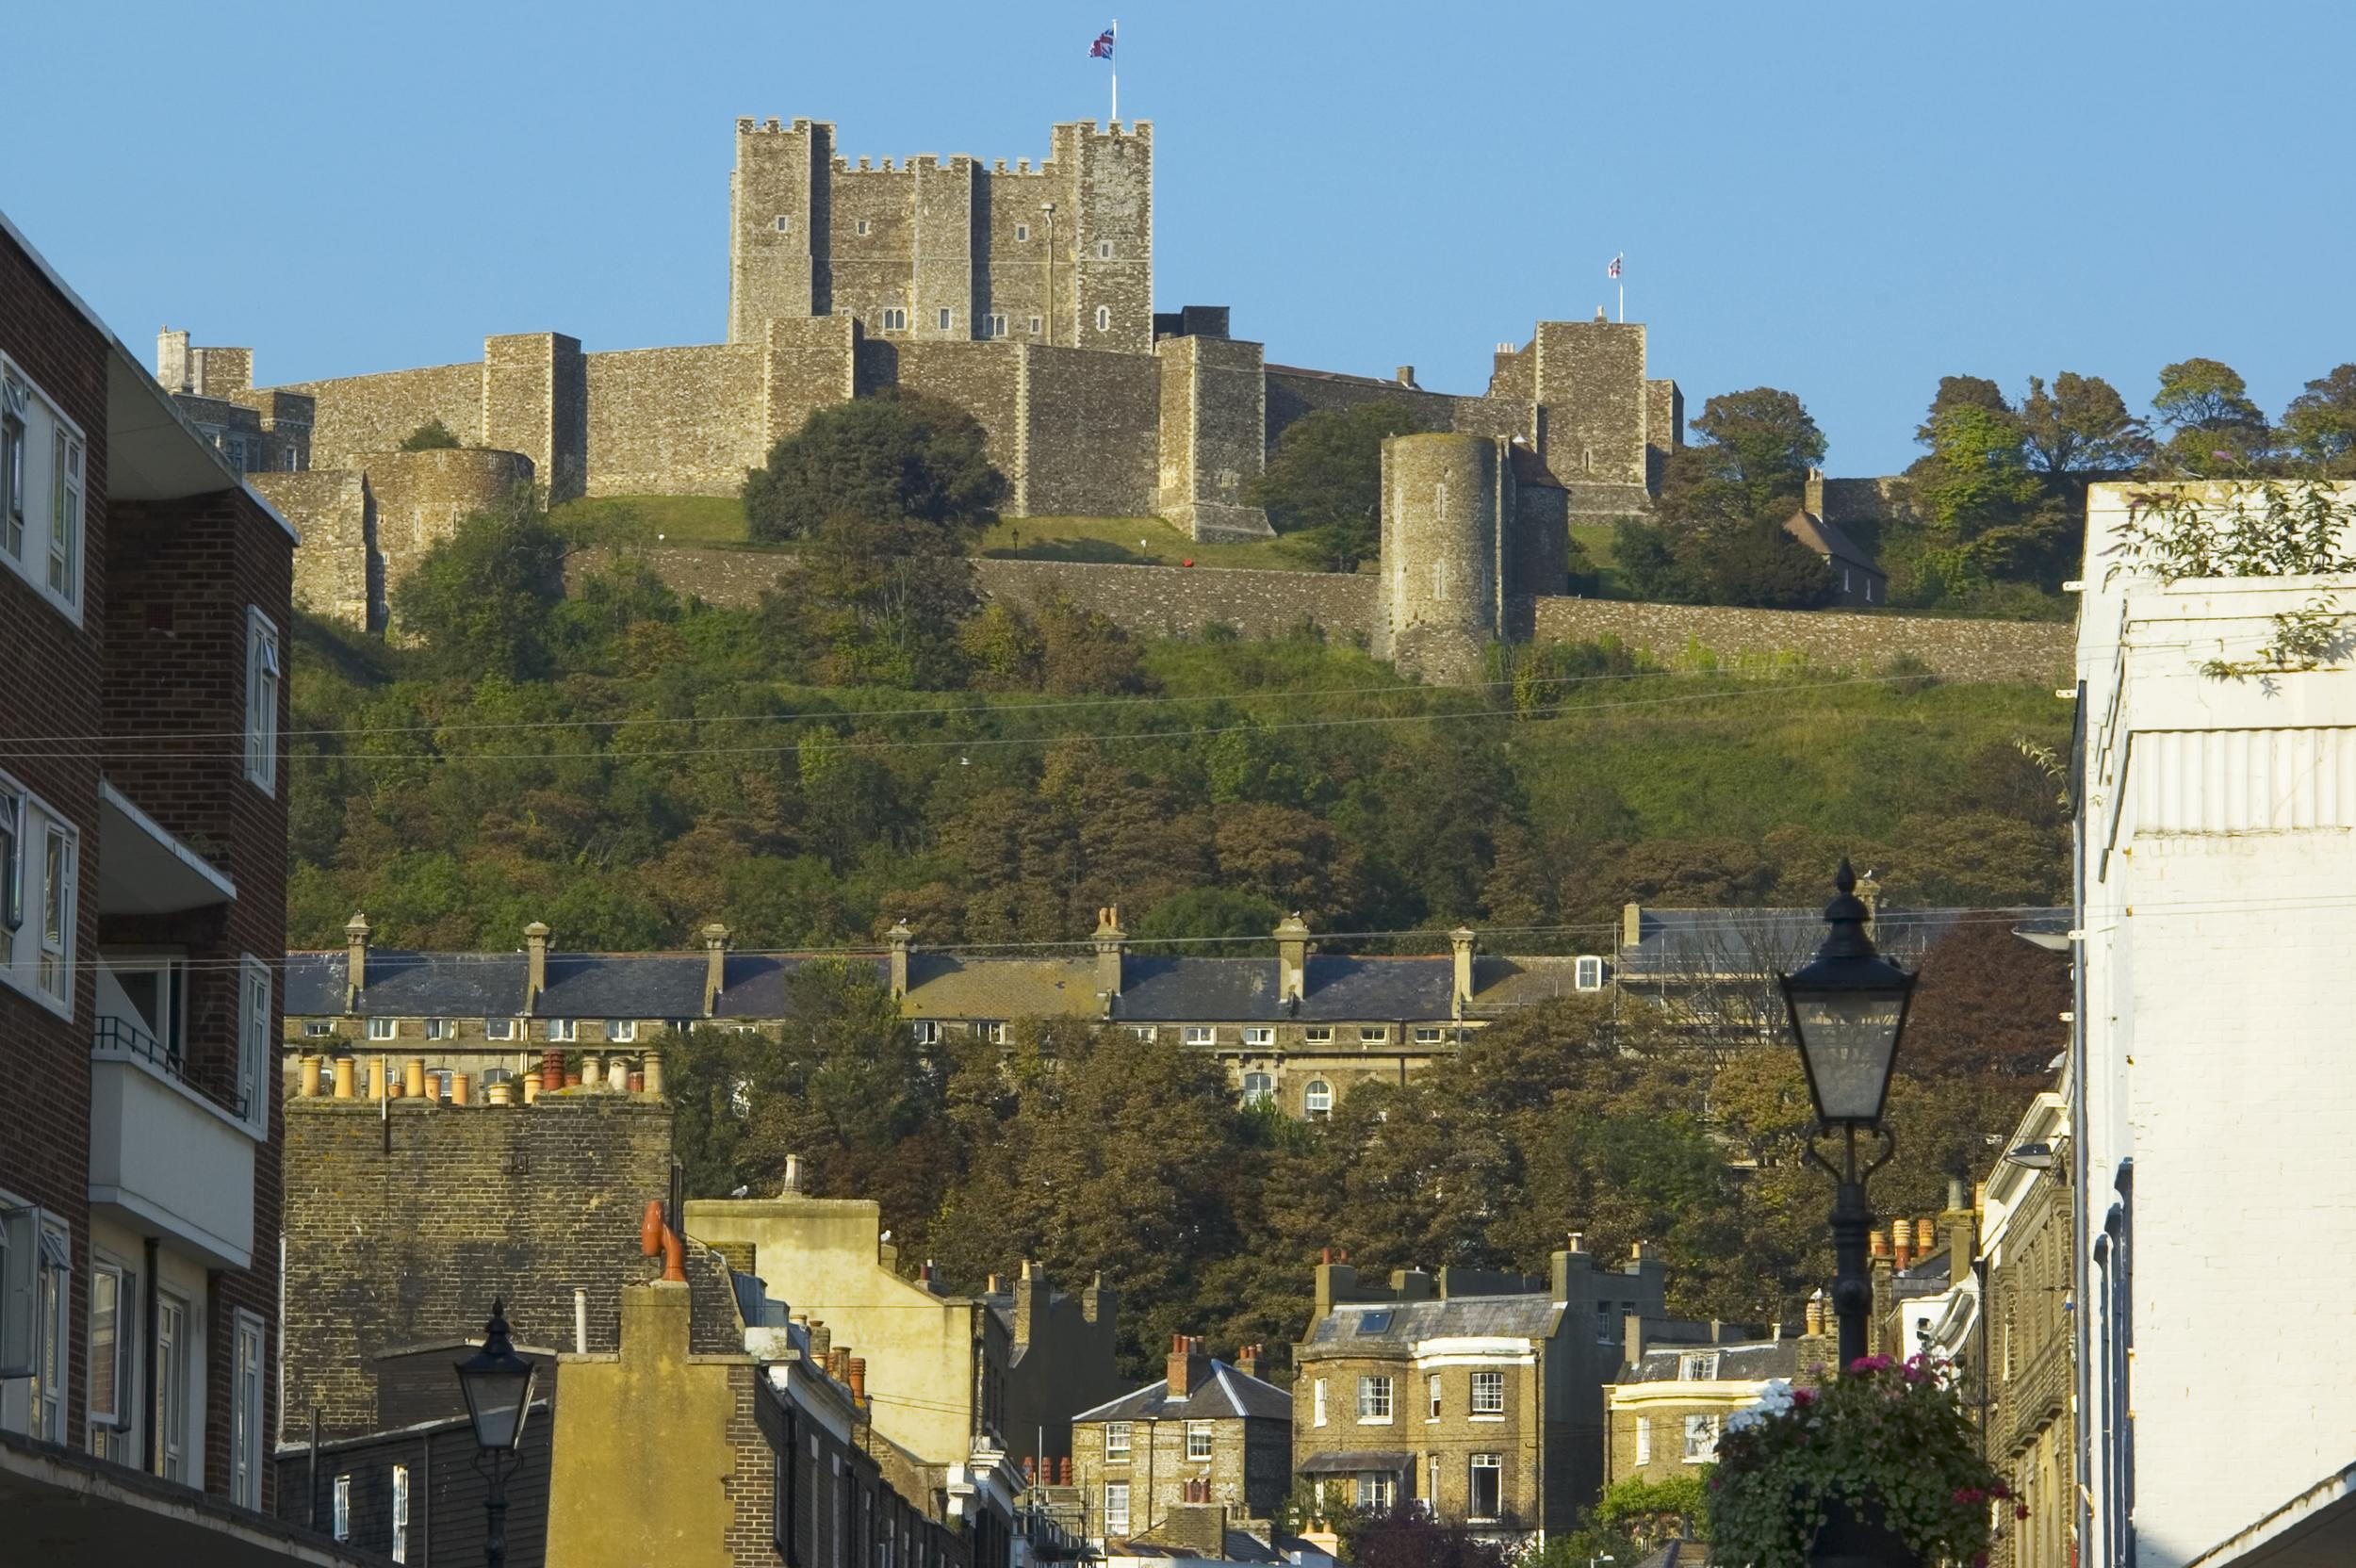 """The <a href=""""http://www.aol.co.uk/travel/2017/07/02/dover-worst-place-to-live-uk/"""" target=""""_blank"""">least favourite town to live in England</a> has been revealed by <a href=""""http://www.ilivehere.co.uk/"""" target=""""_blank"""">ilivehere.co.uk</a>, with the winner being praised for its """"chavley splendor"""". Other places to make the top ten list were described as the """"toilet of England,"""" an """"excremental town"""" and """"literally hell on earth"""". Browse the best of Britain's 'crap' towns..."""